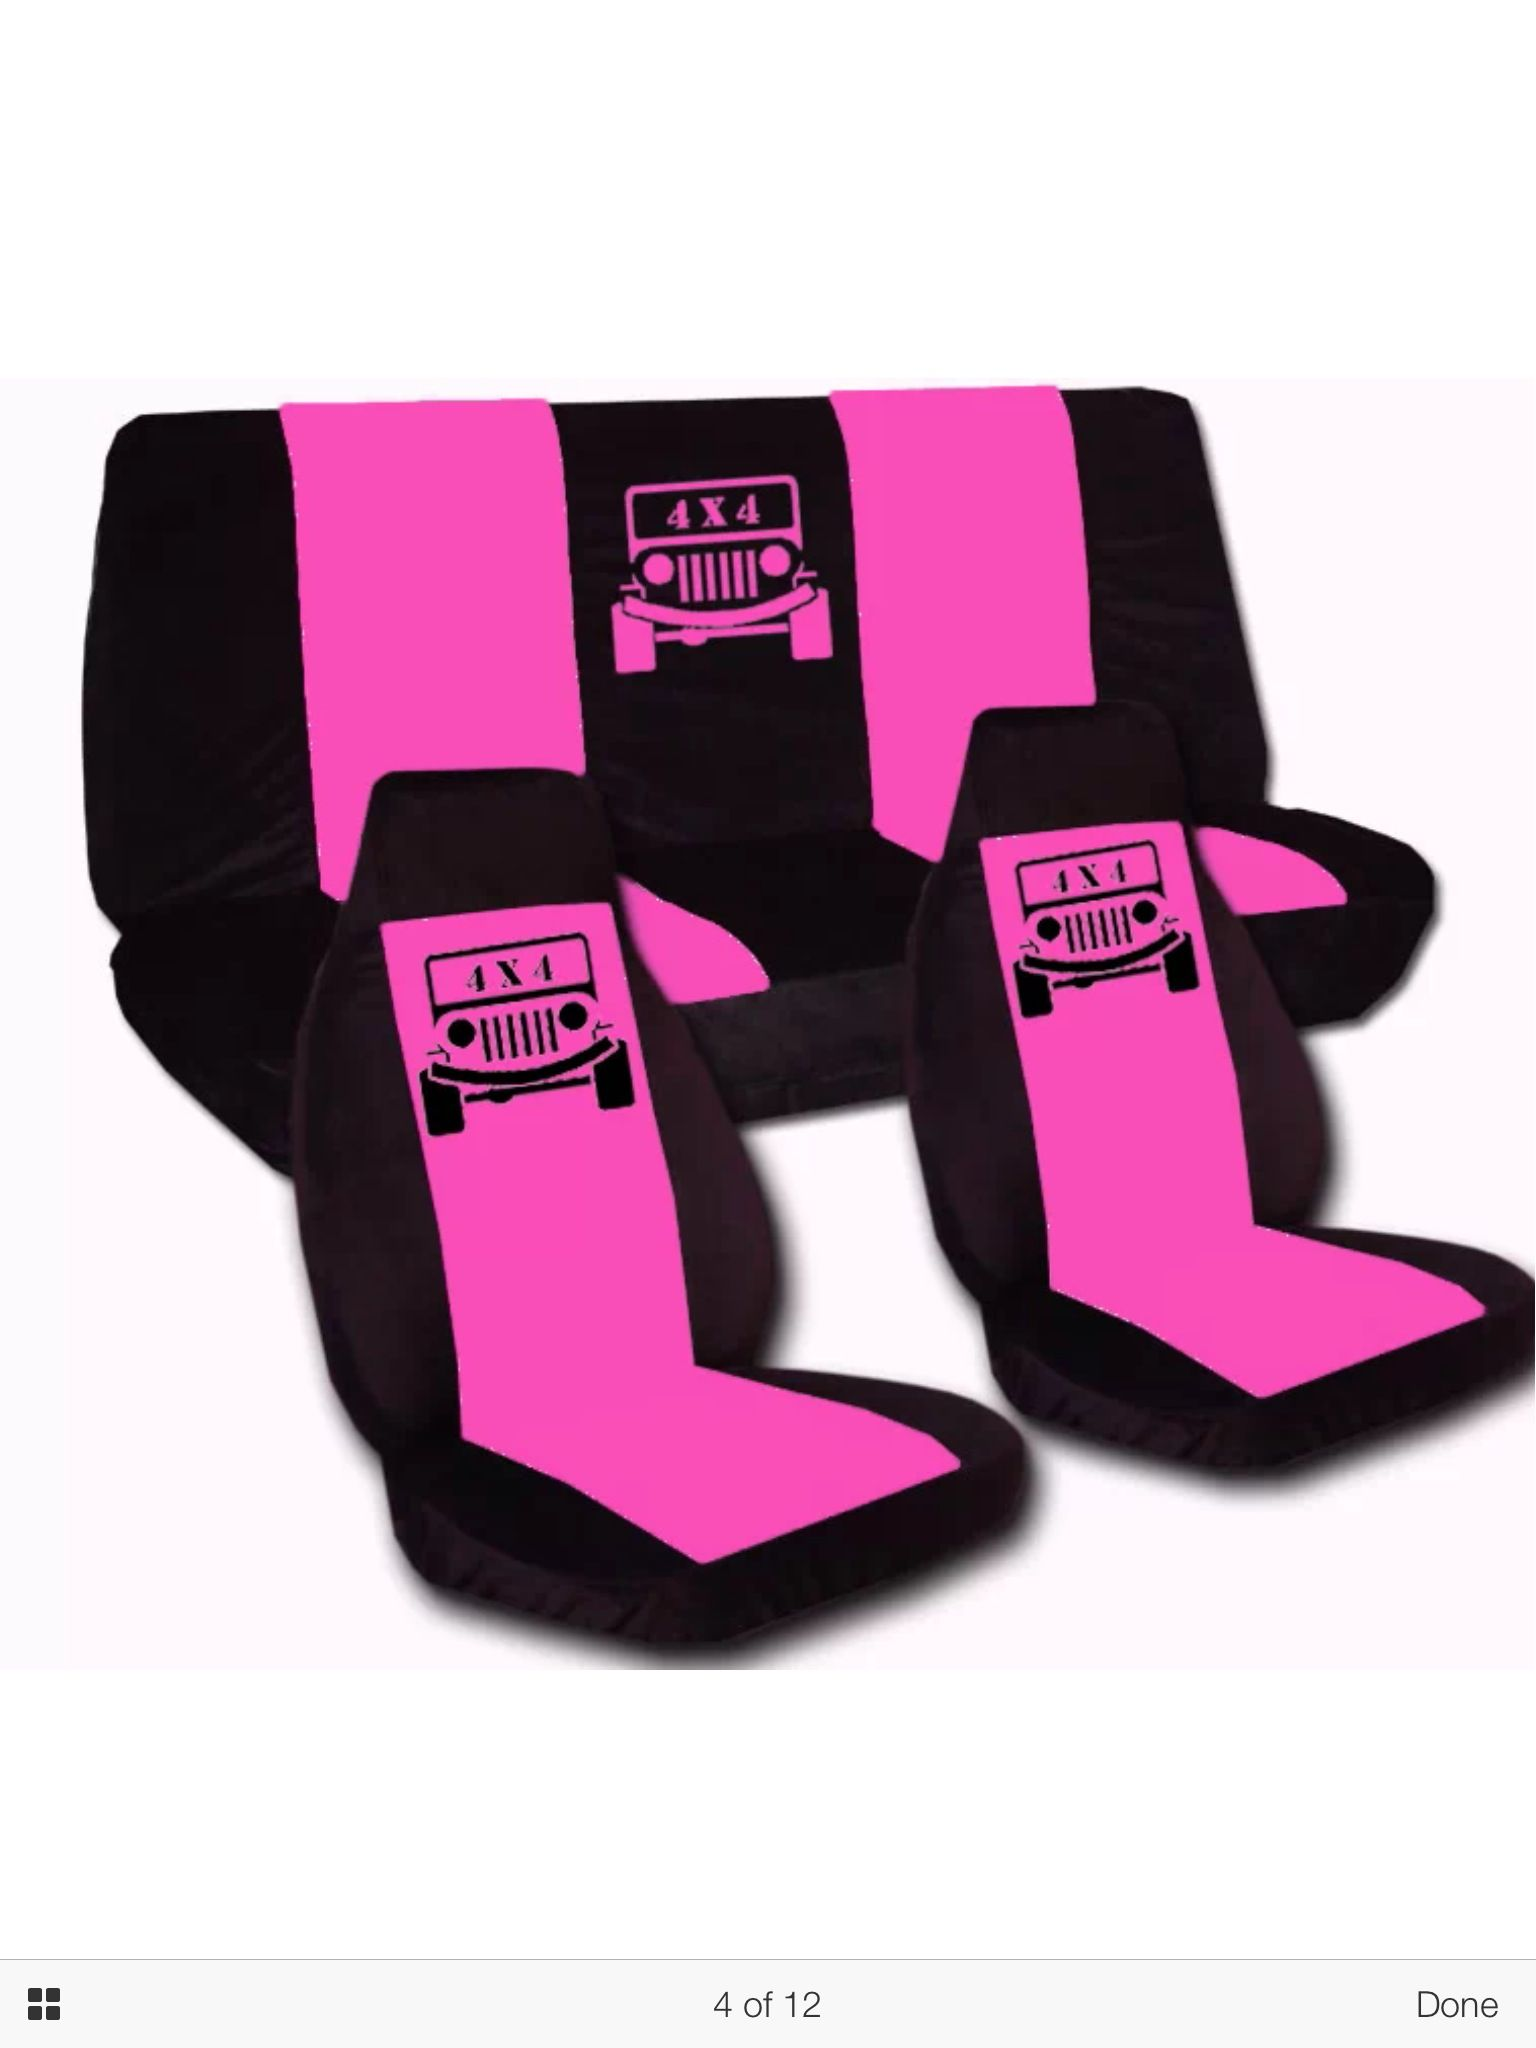 Pin by Molly Simpson on Jeep Pink seat covers, Jeep